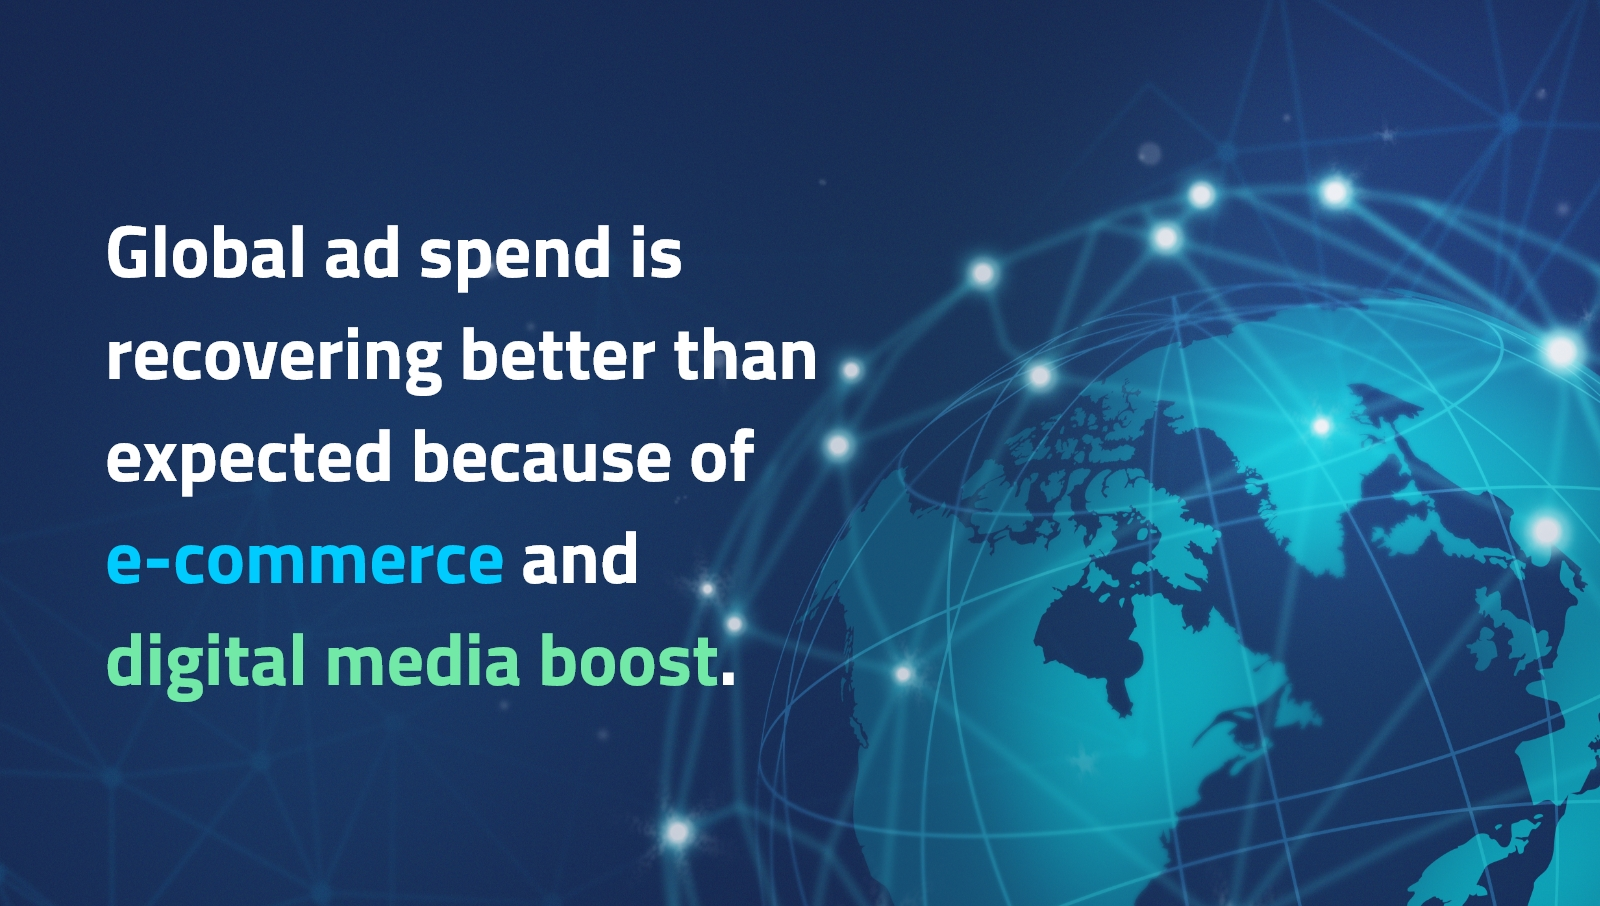 Global-ad-spend-is-recovering better-than-expected-image